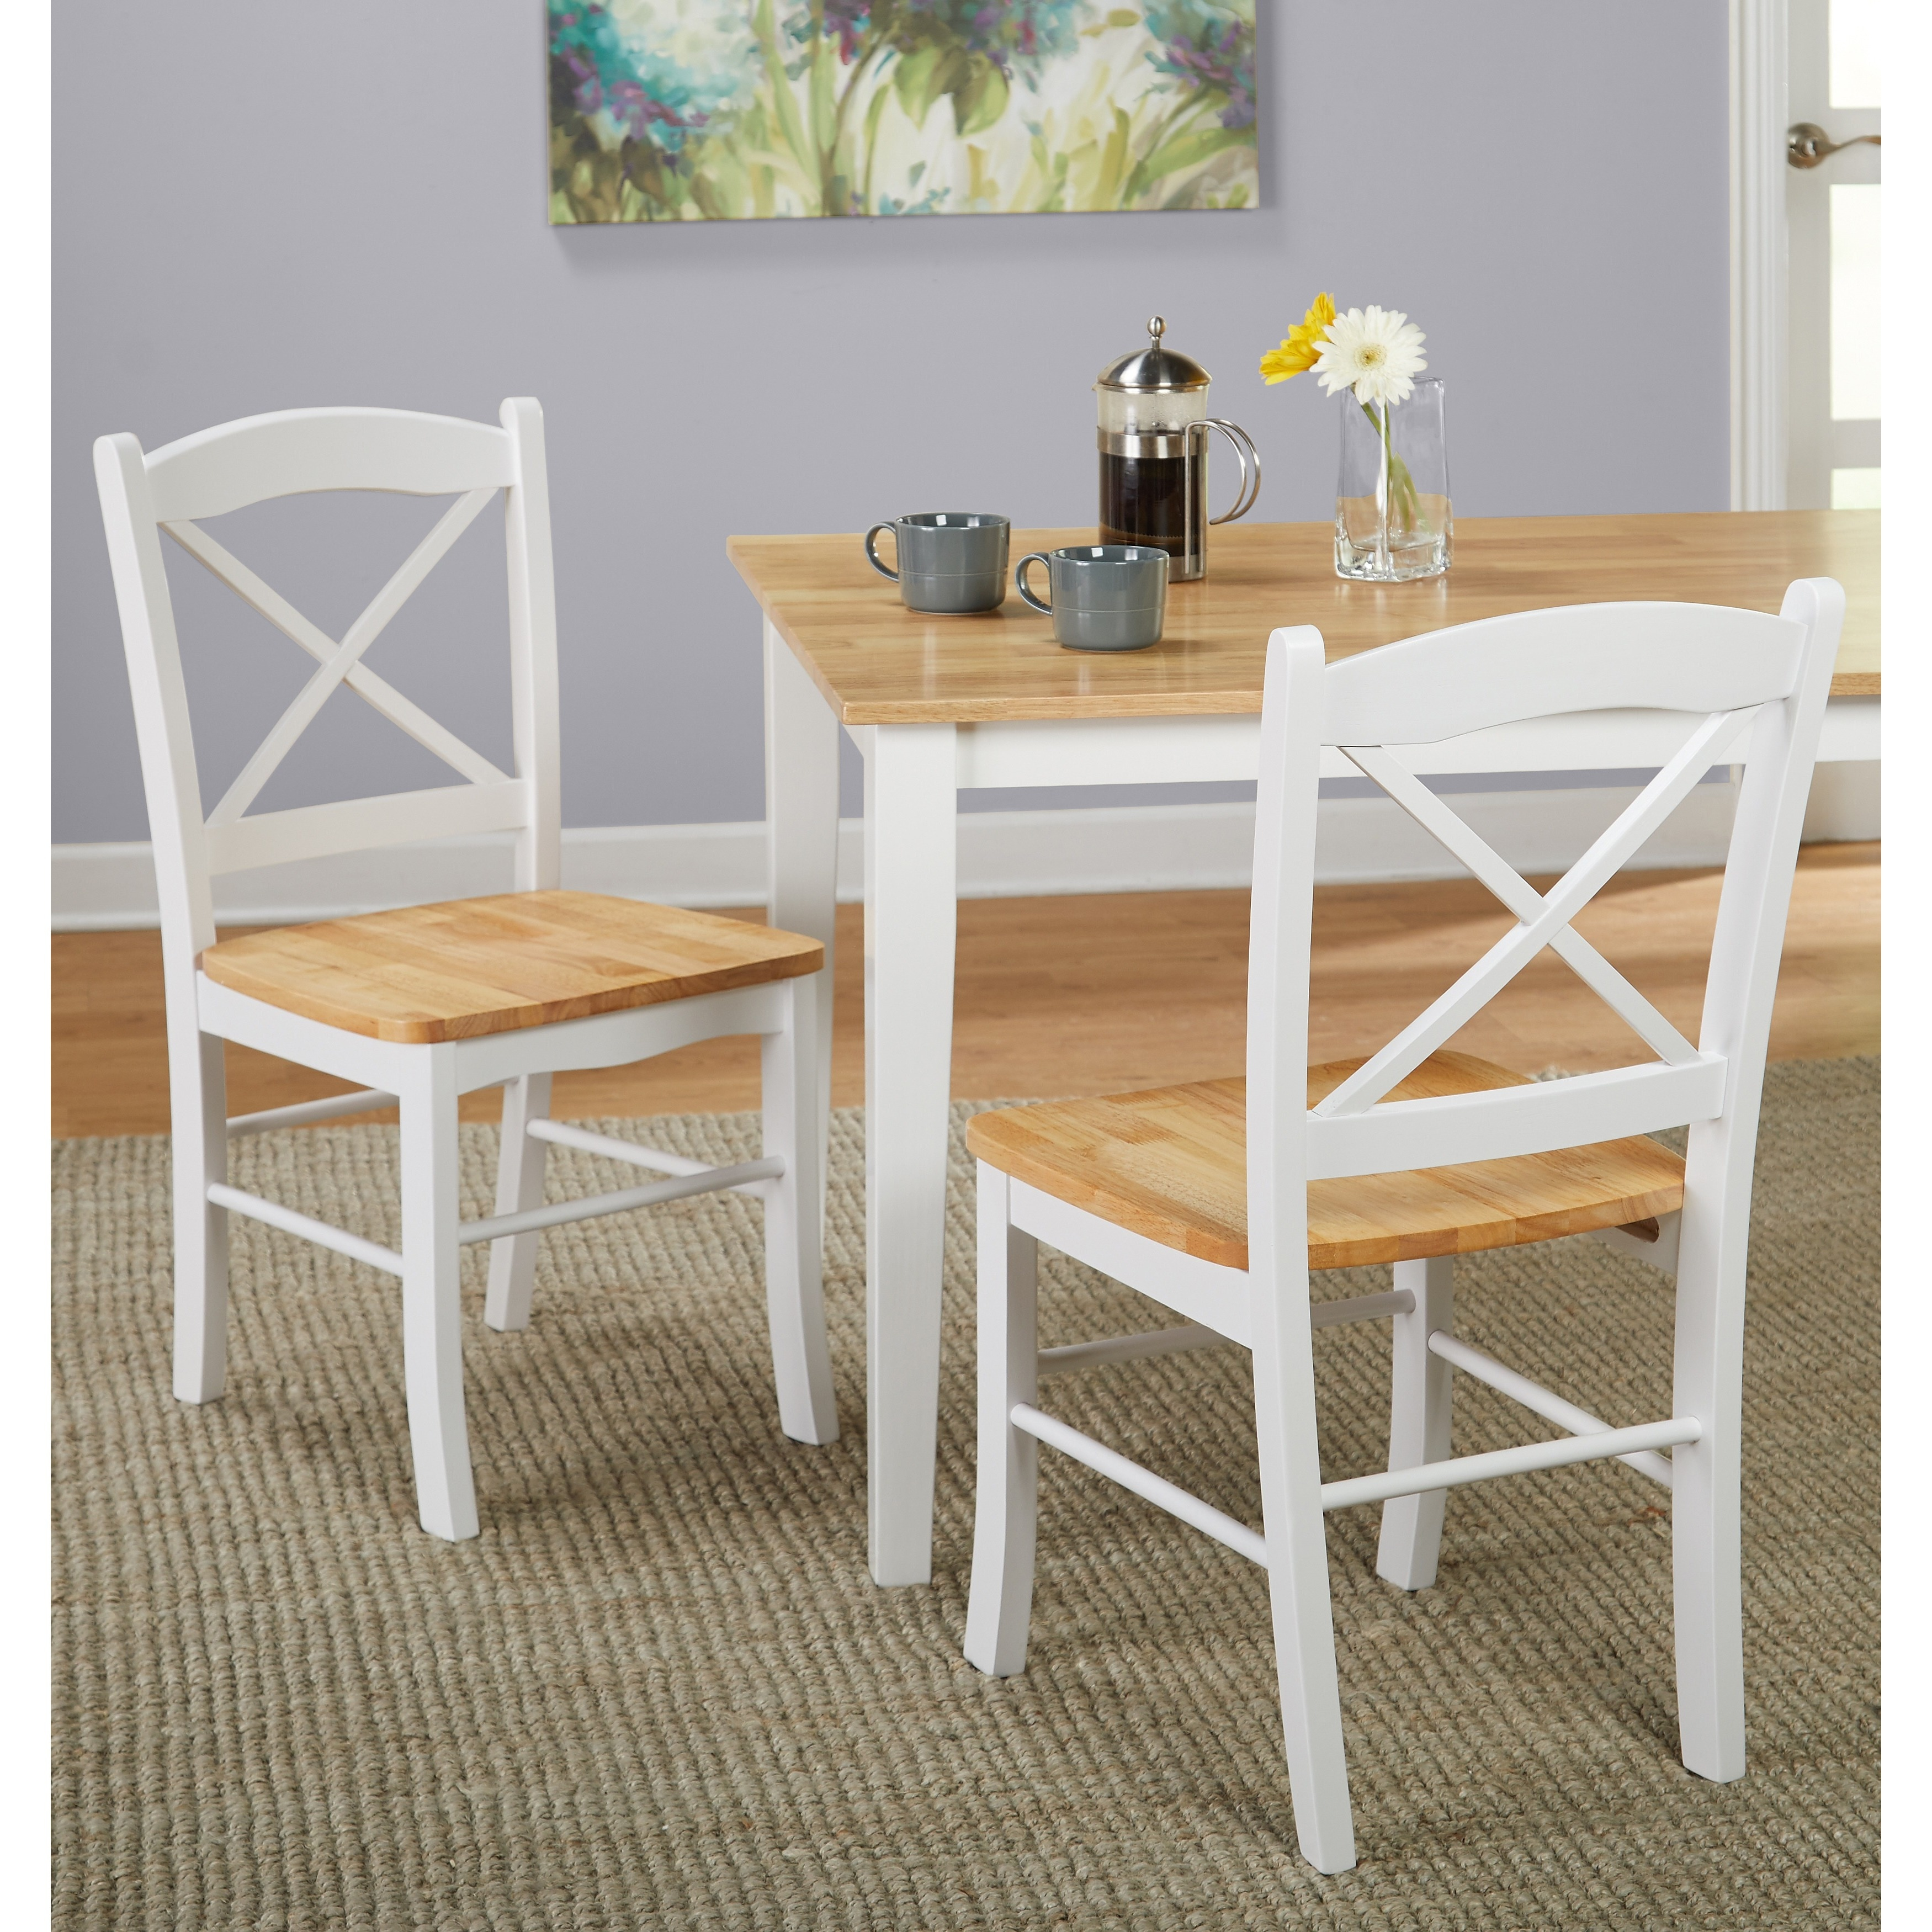 Country Dining Room Chairs Overstock Online Shopping Bedding Furniture Electronics Jewelry Clothing More